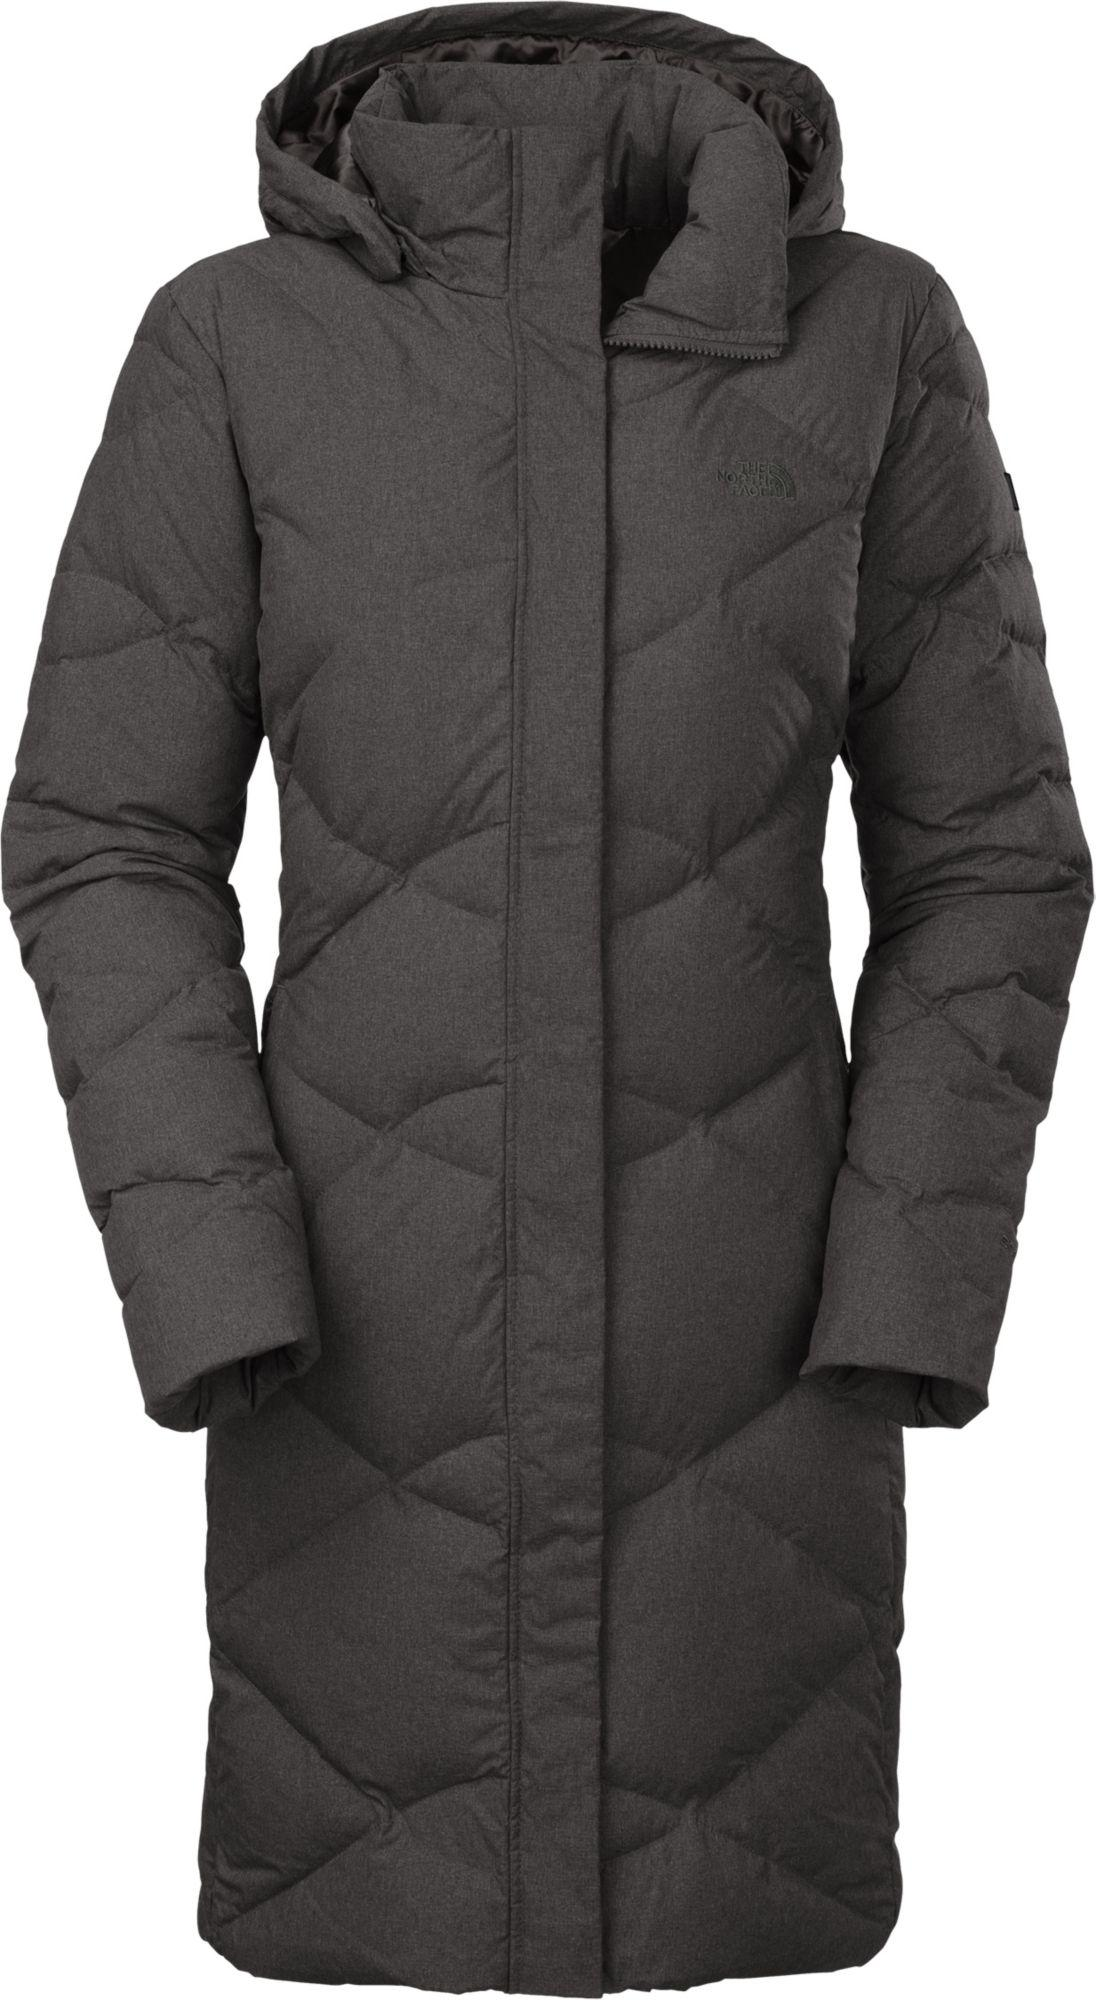 8c5a91de32 Lyst - The North Face Miss Metro Down Jacket in Gray